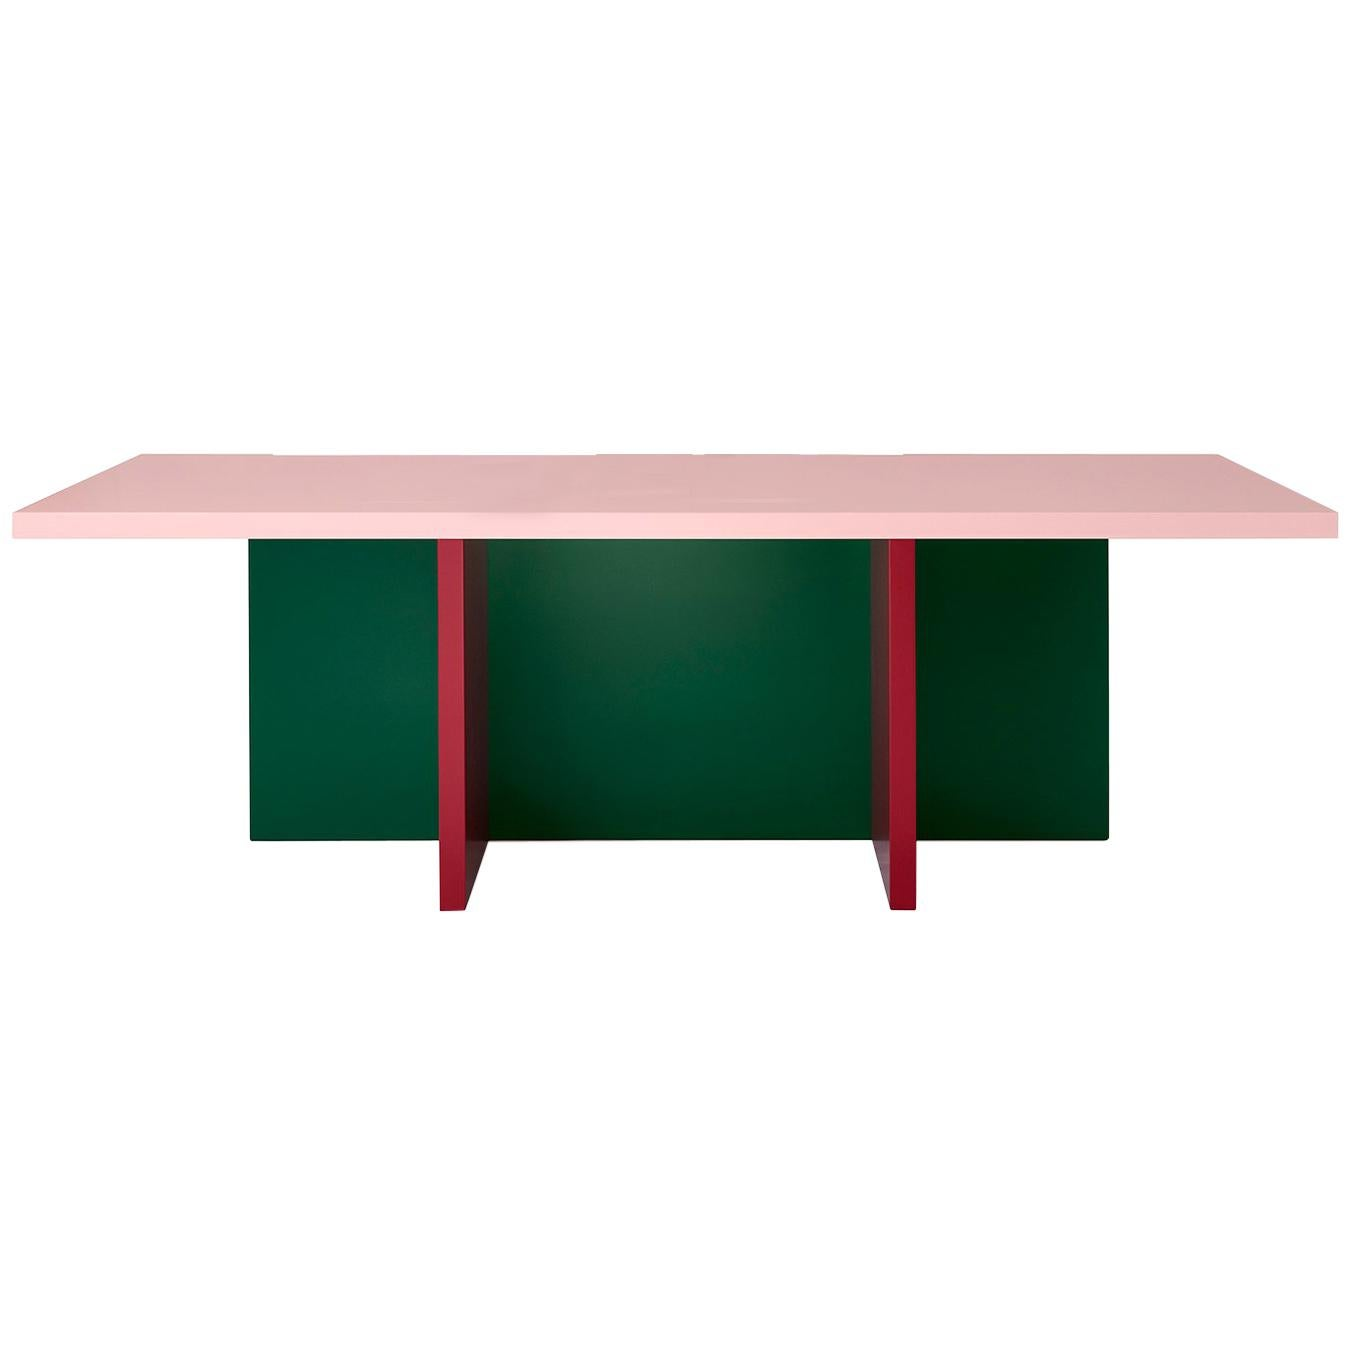 Color-Blocked Lacquered MDF Modesto Dining or Conference Table by Studio Bannach